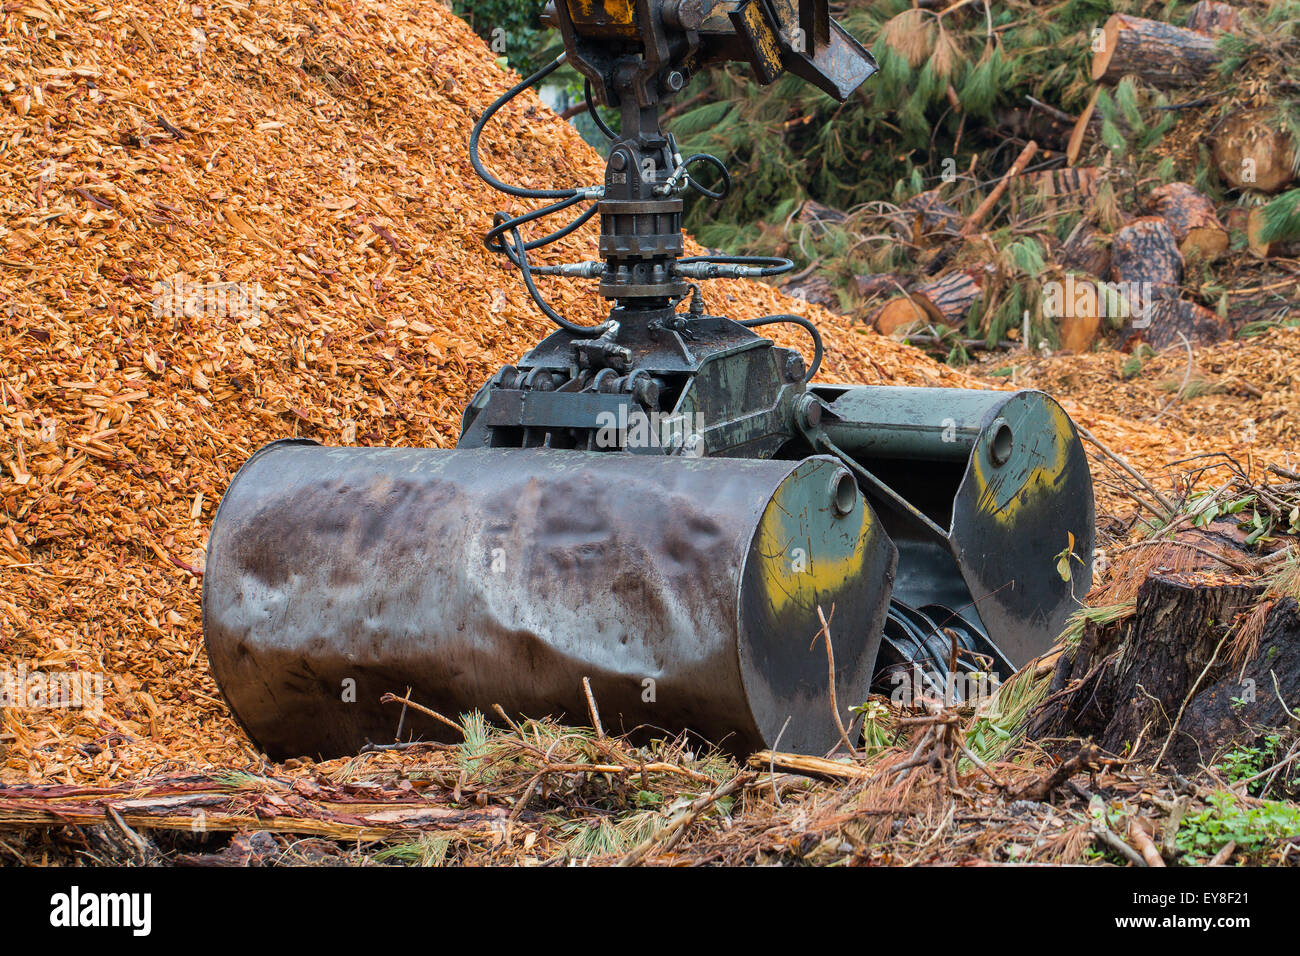 Hydraulic Loading Arms : Loading hydraulic clamshell grab bucket attached onto an